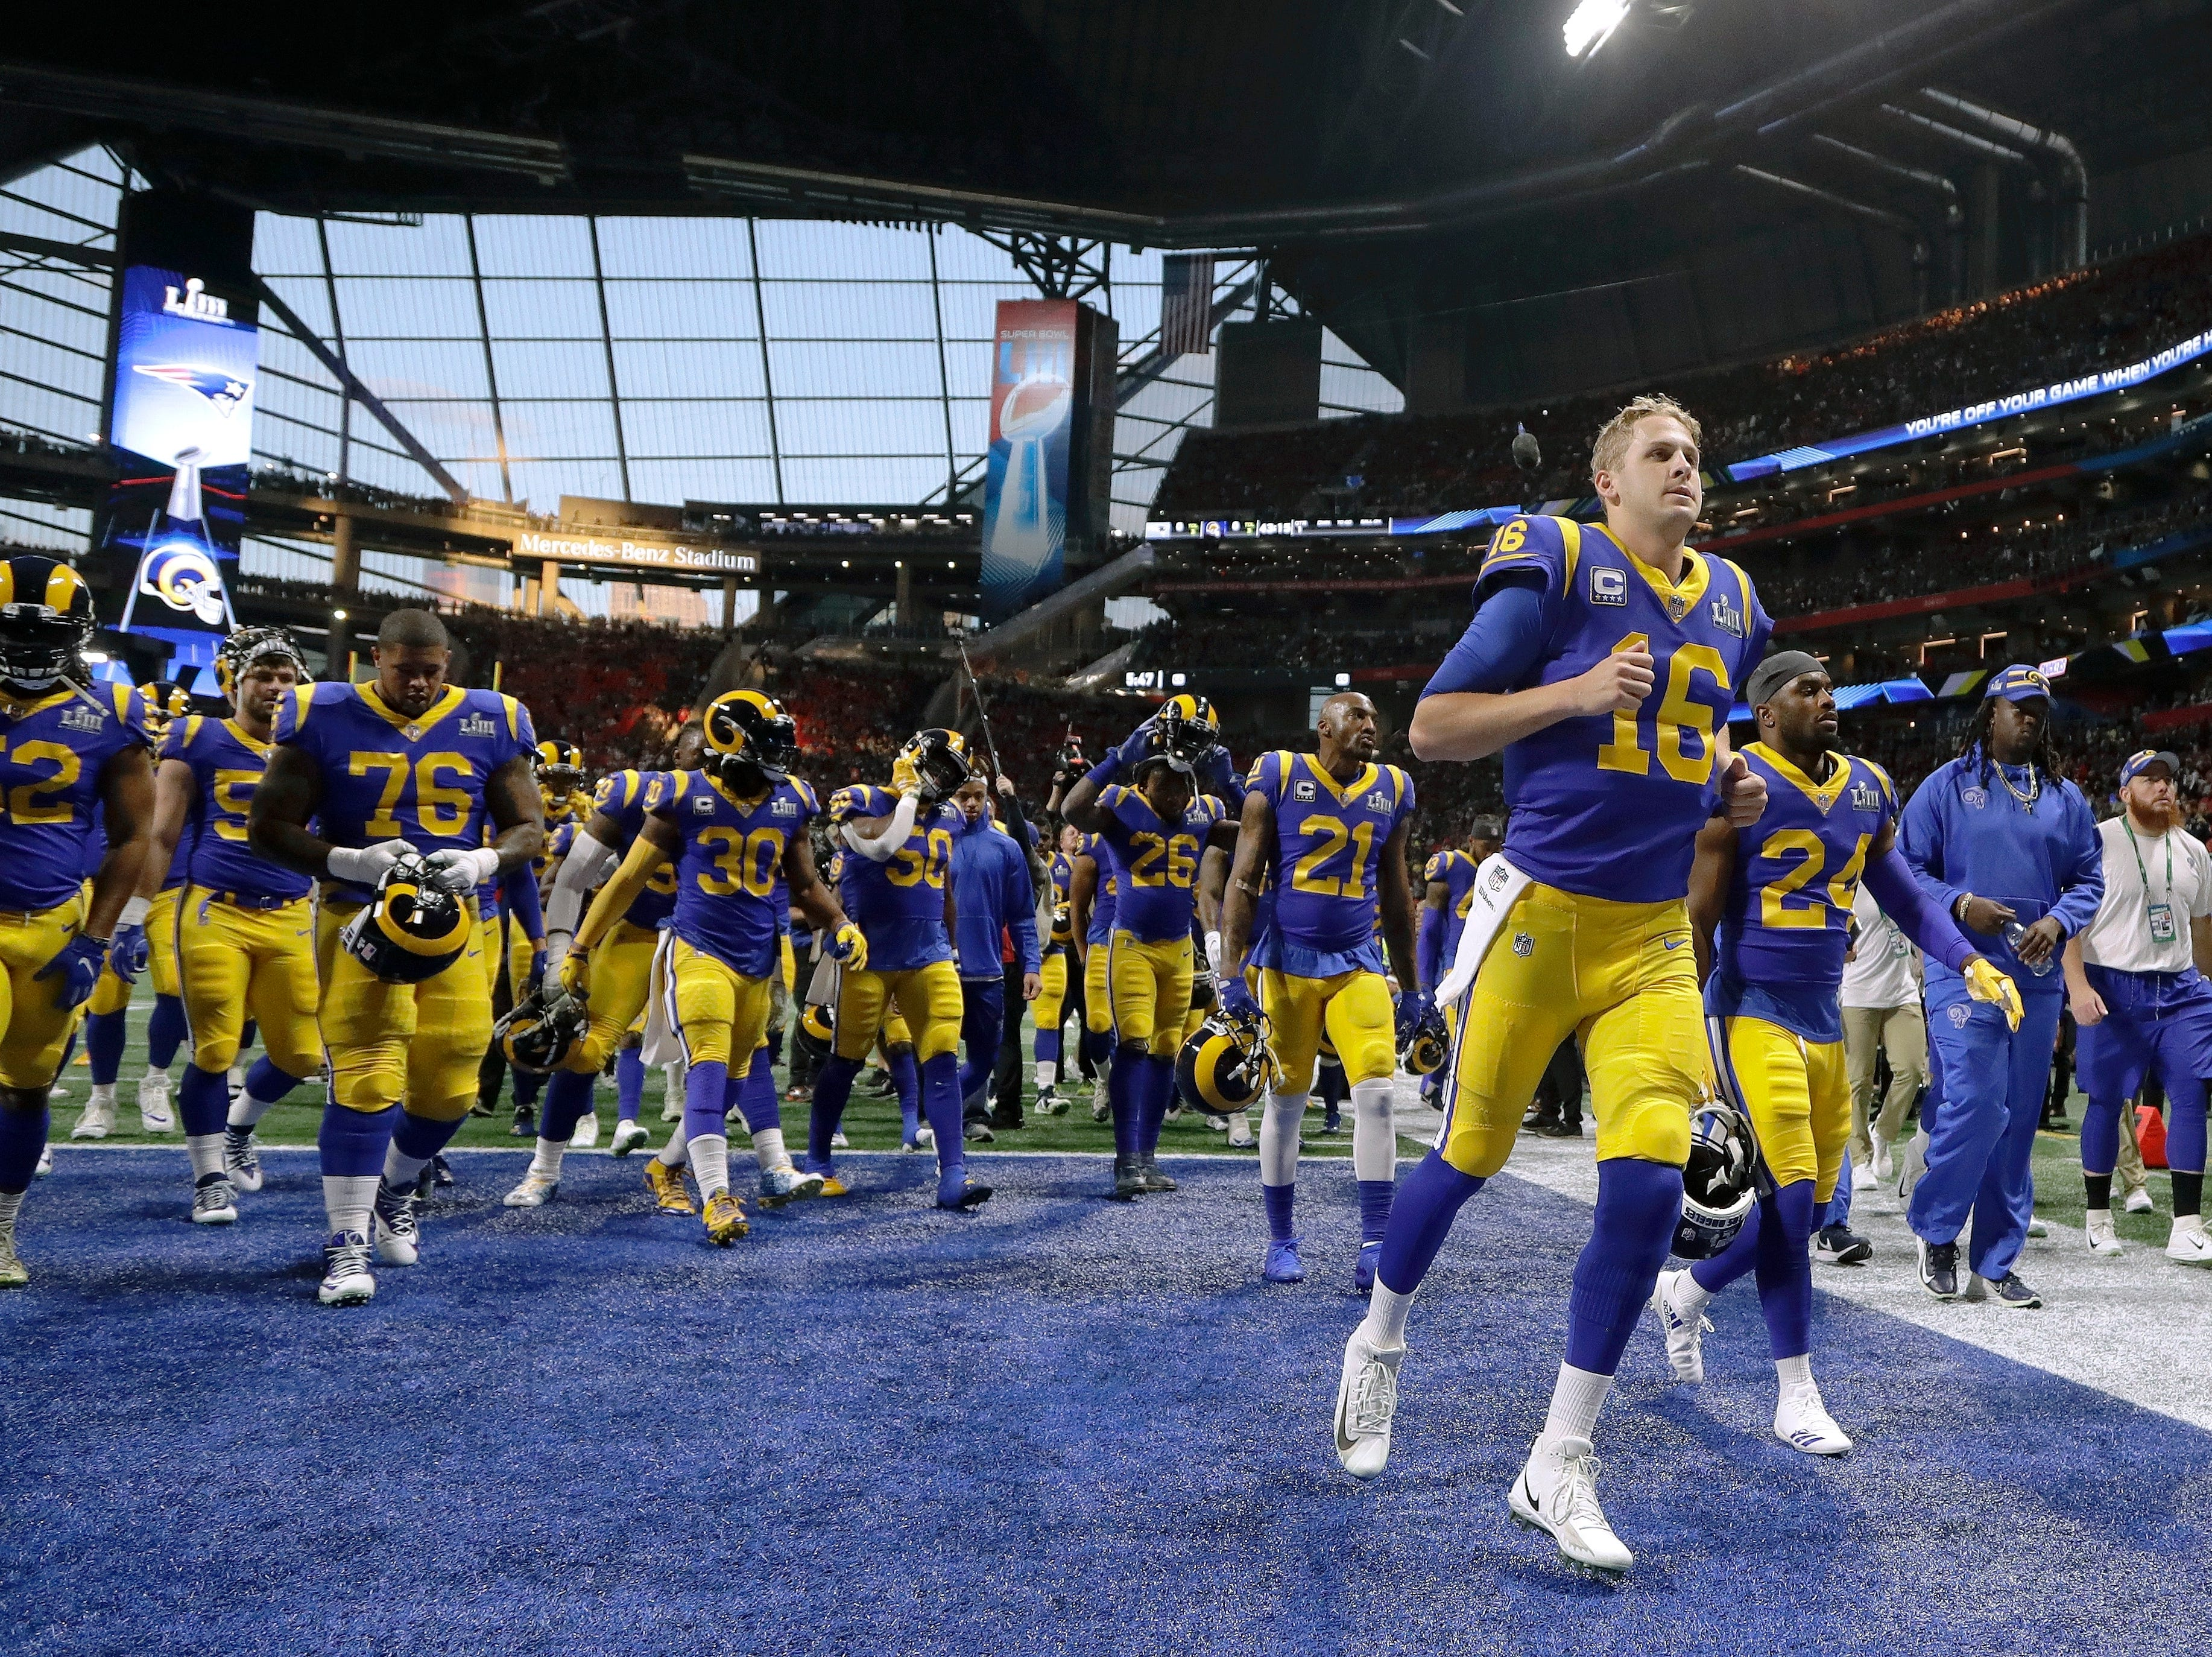 Los Angeles Rams' Jared Goff (16) runs to the locker room with his teammates before the game.